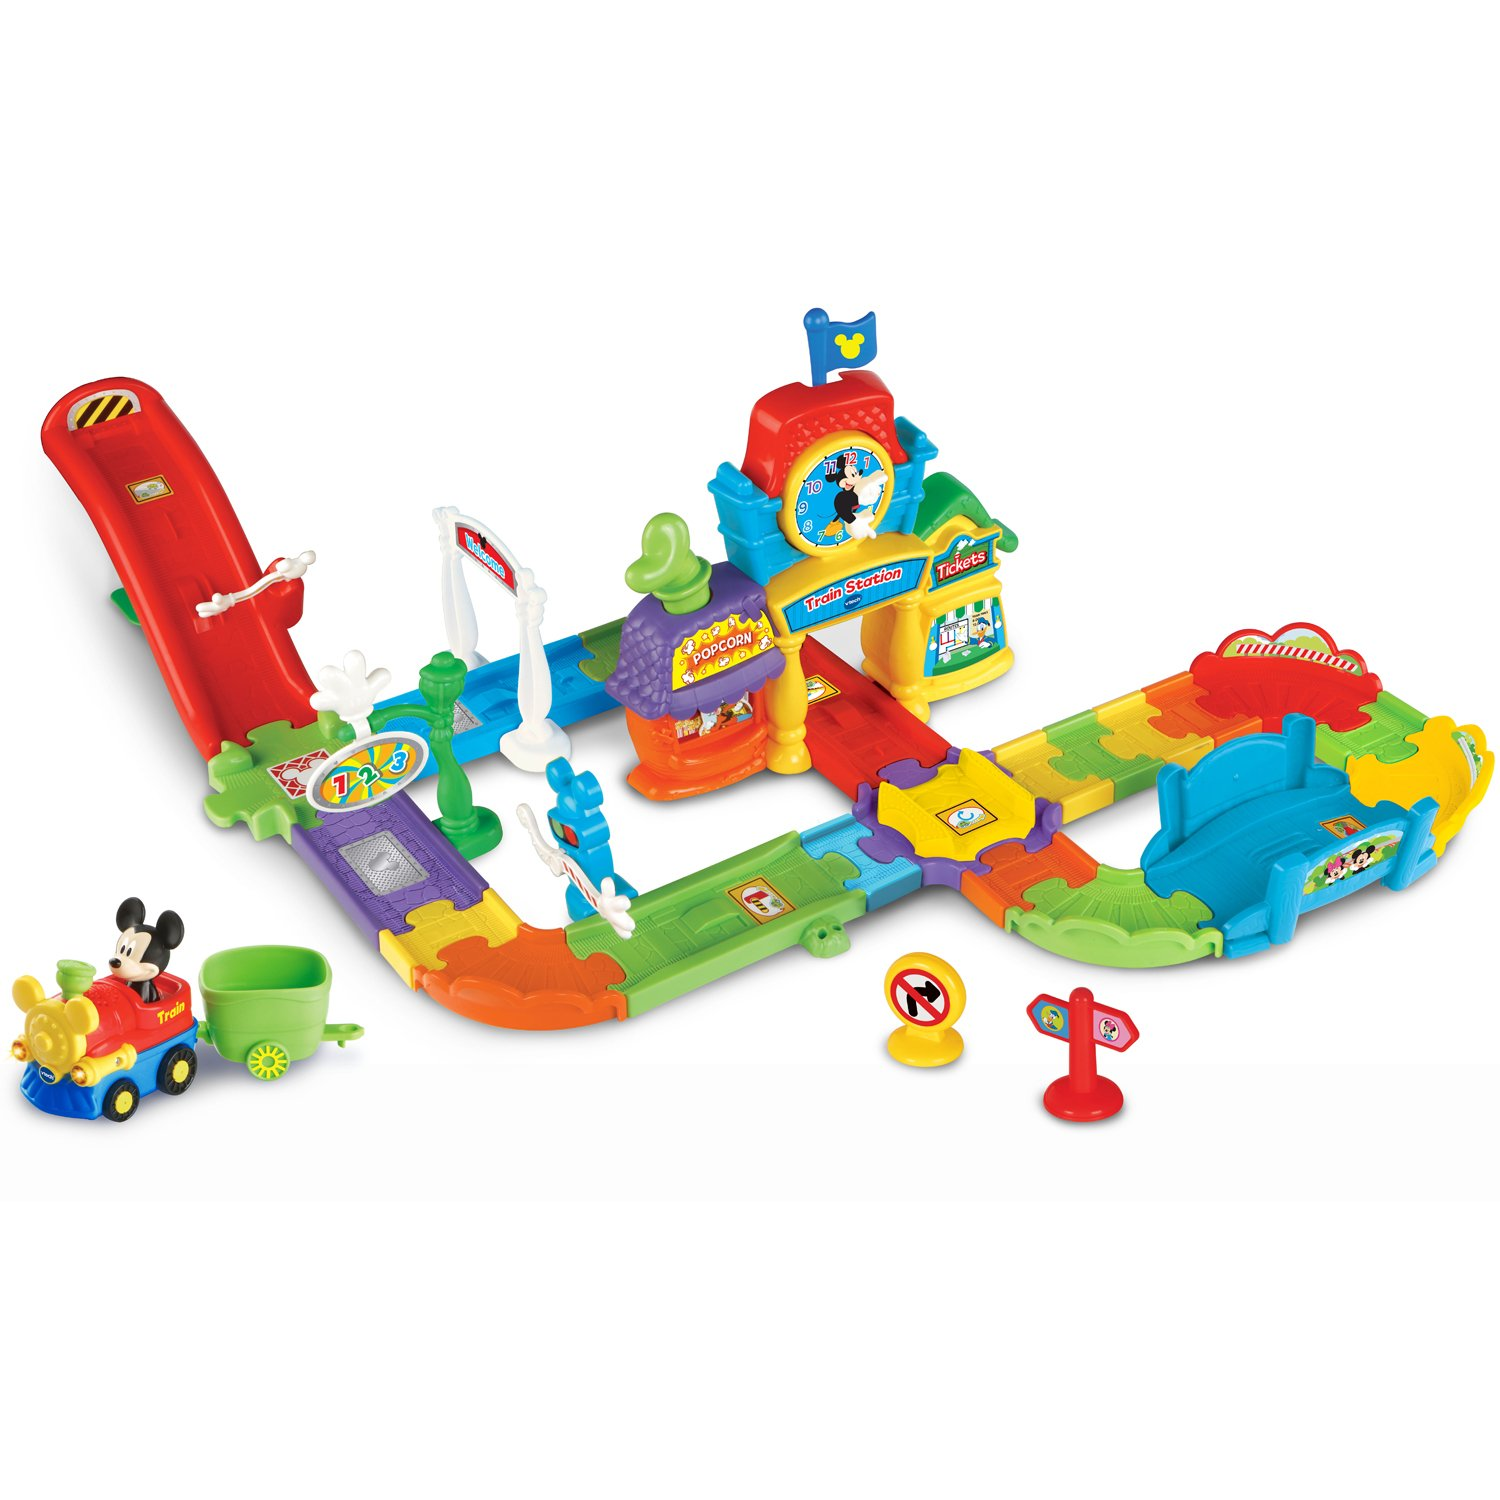 VTech Go! Go! Smart Wheels Mickey Mouse Choo-Choo Express by VTech (Image #1)